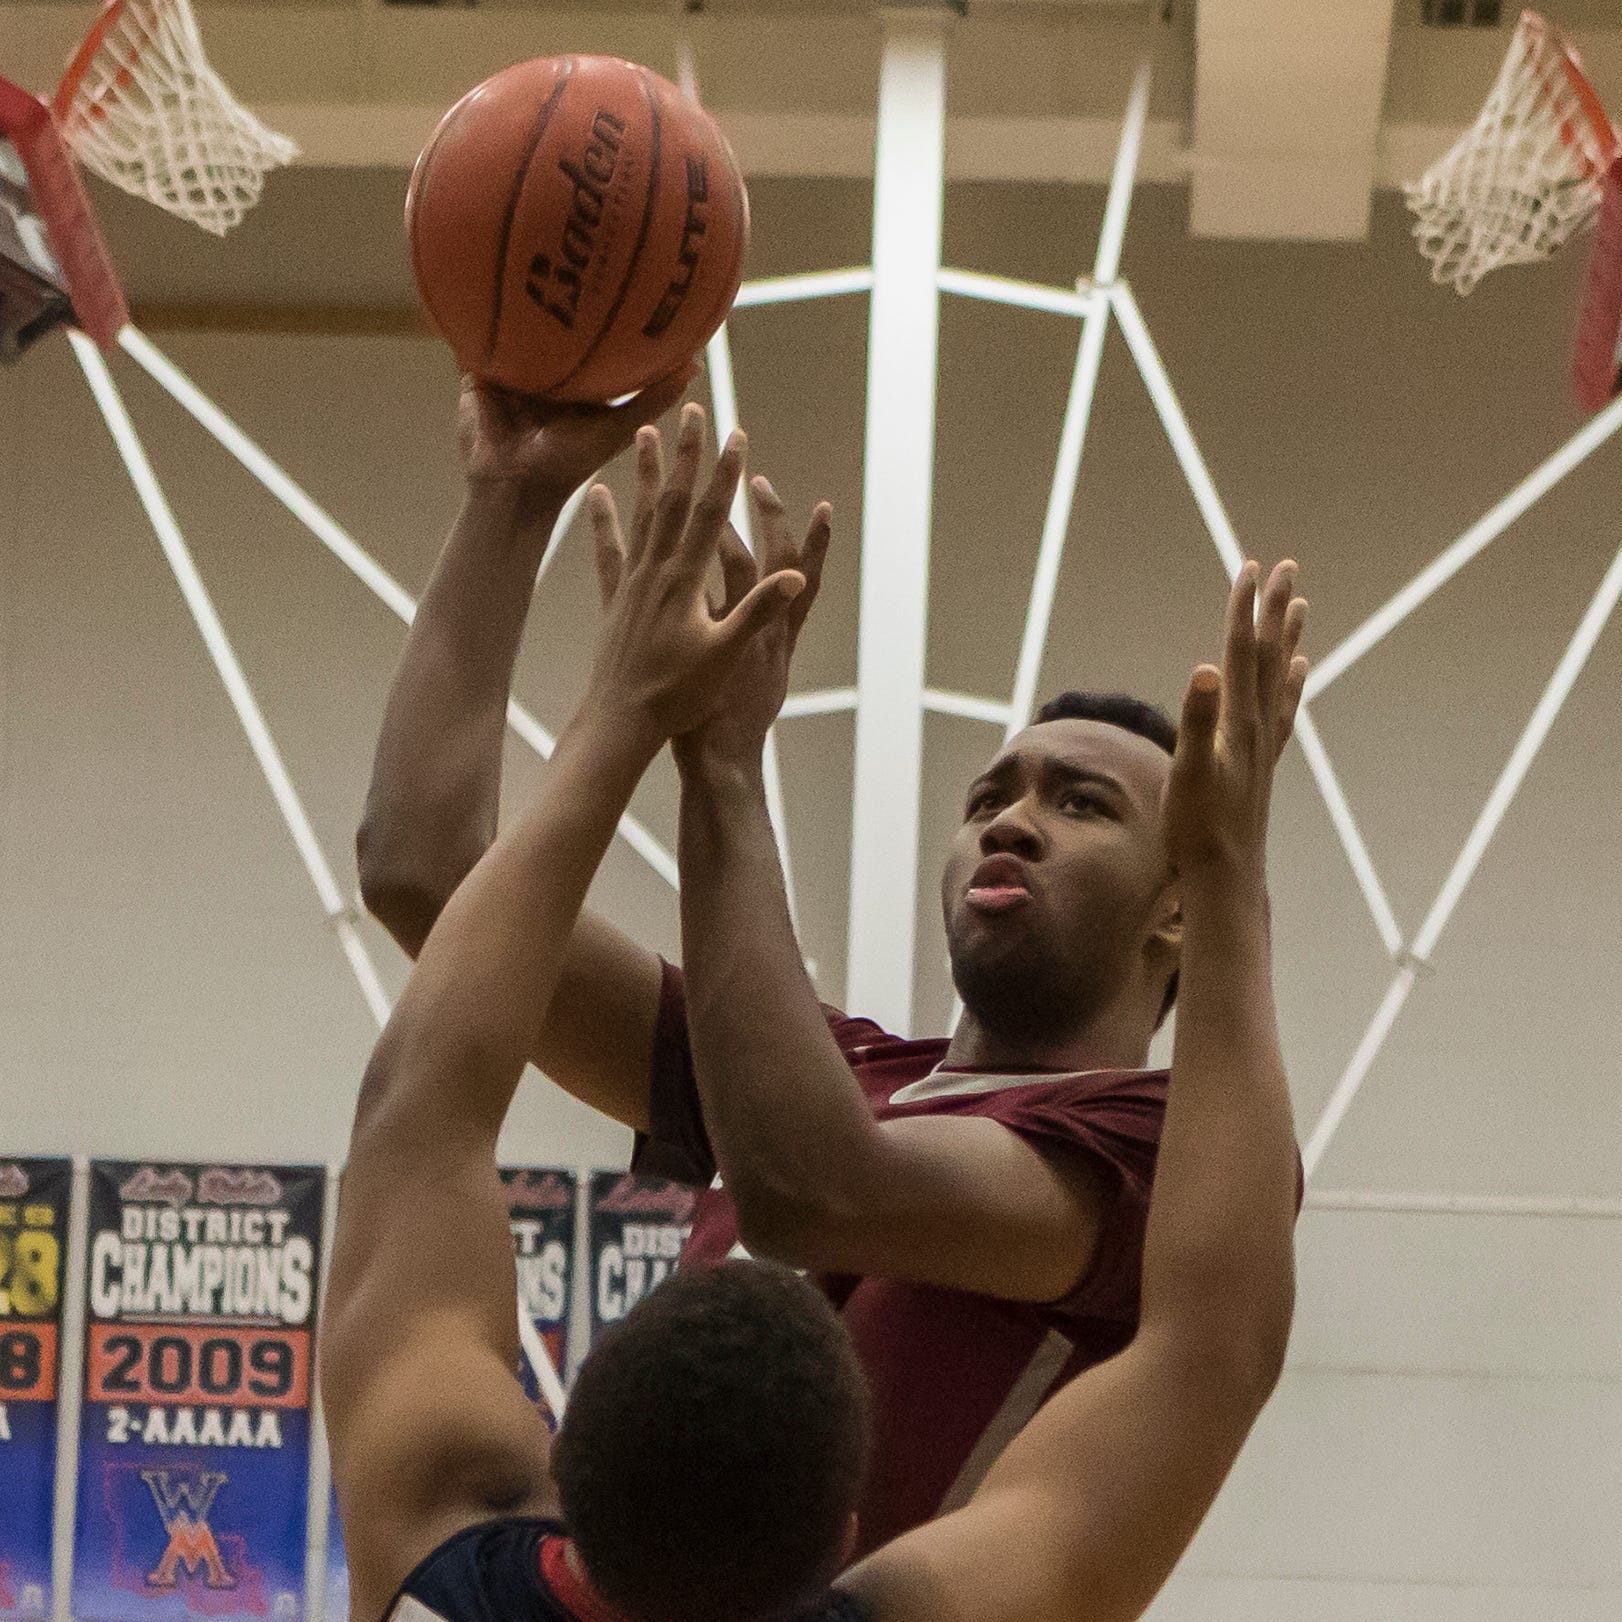 Ouachita's Myron Washington (5) shoots a basket while West Monroe's Dontrell Cobbs (12) attempts to make the block during the second round of class 5A playoff basketball at West Monroe High School in West Monroe, La. Ouachita would win the game 58-46.